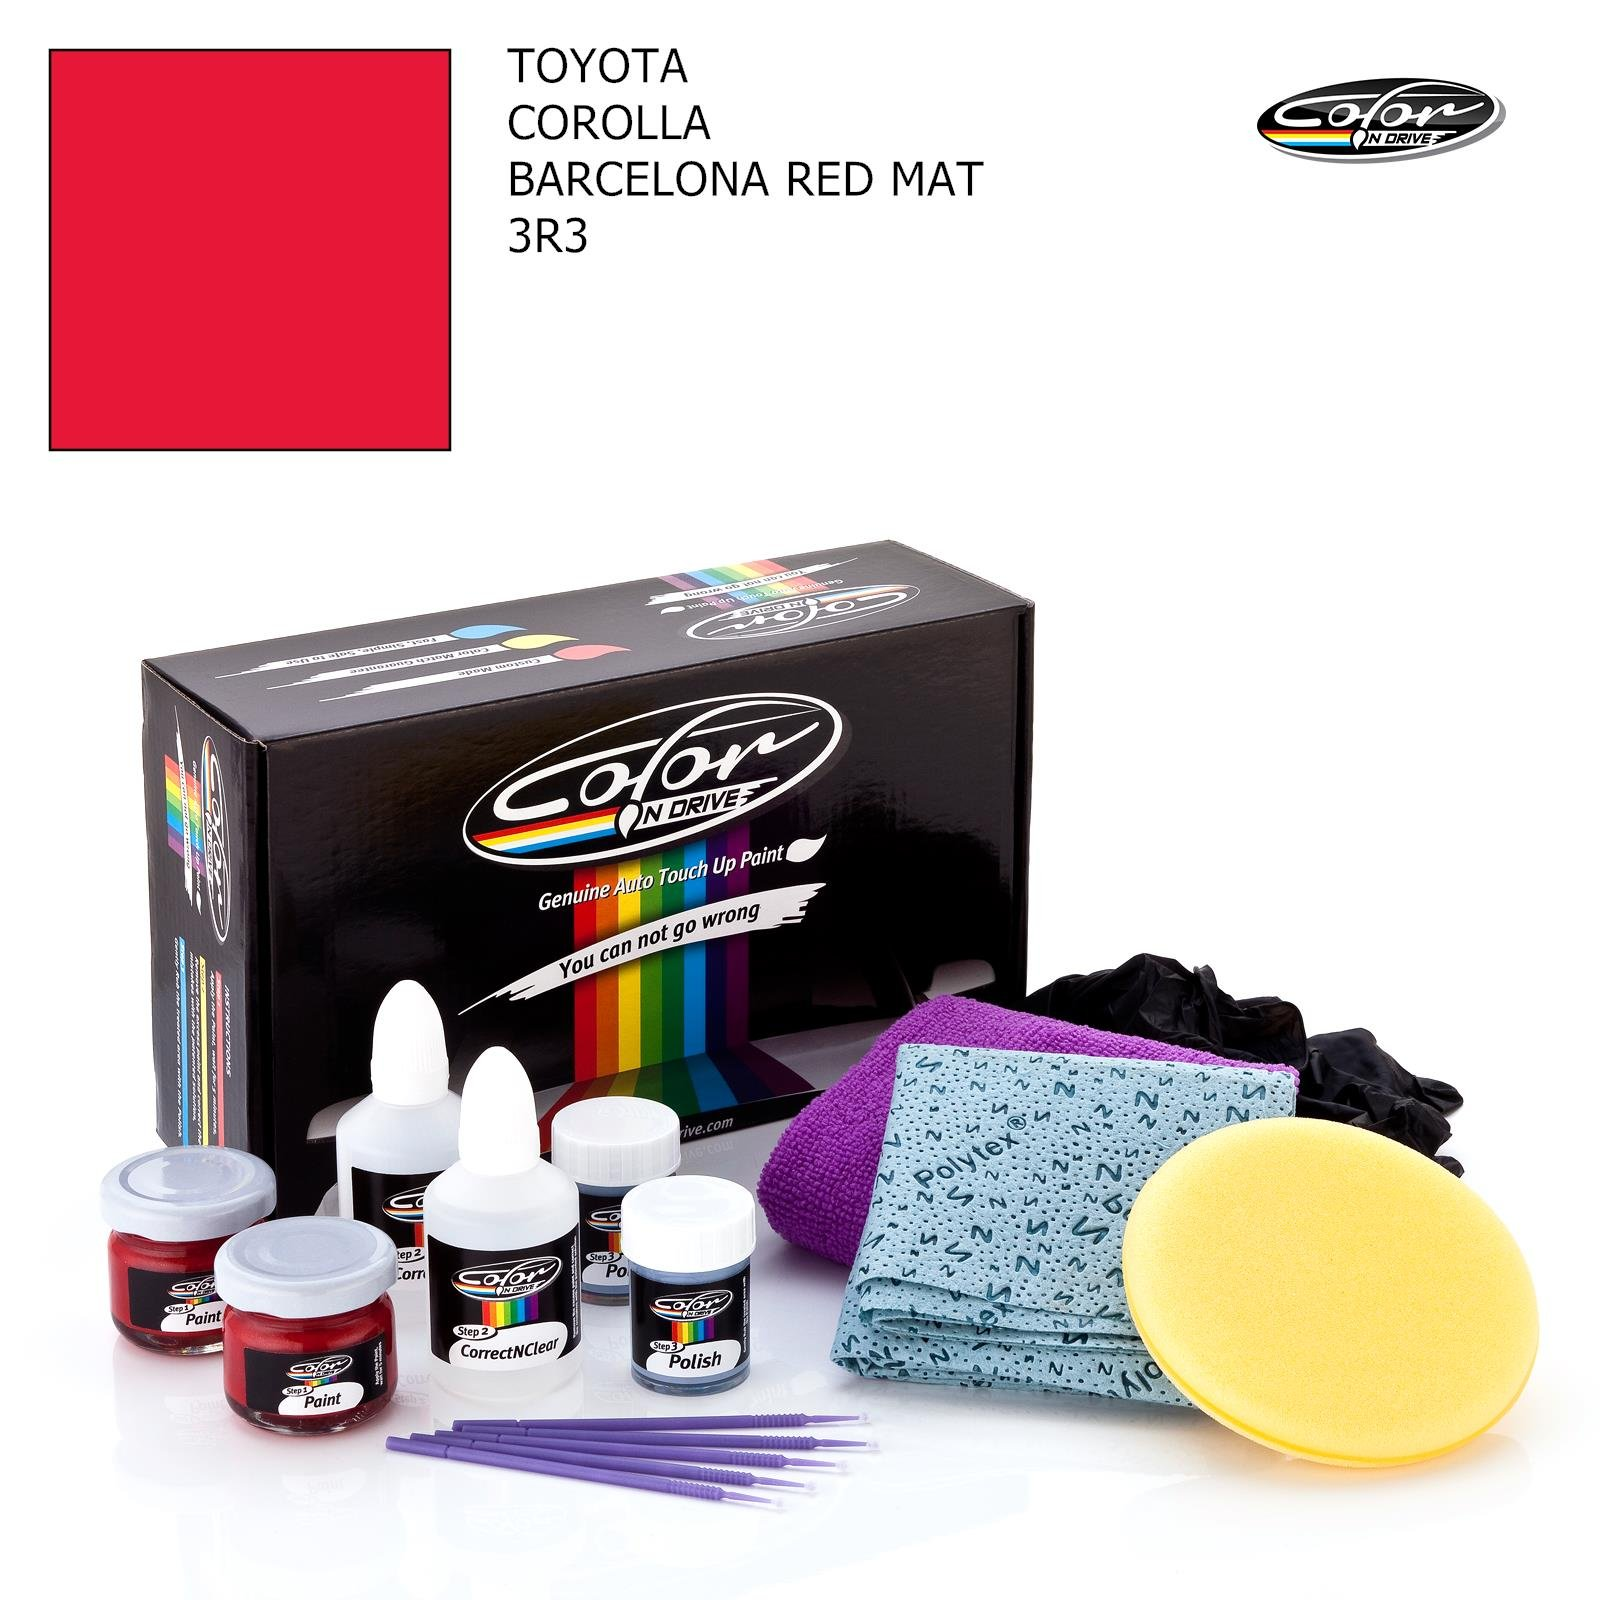 Toyota Corolla/Barcelona RED MAT - 3R3 / Color N Drive Touch UP Paint System for Paint Chips and Scratches/PRO Pack